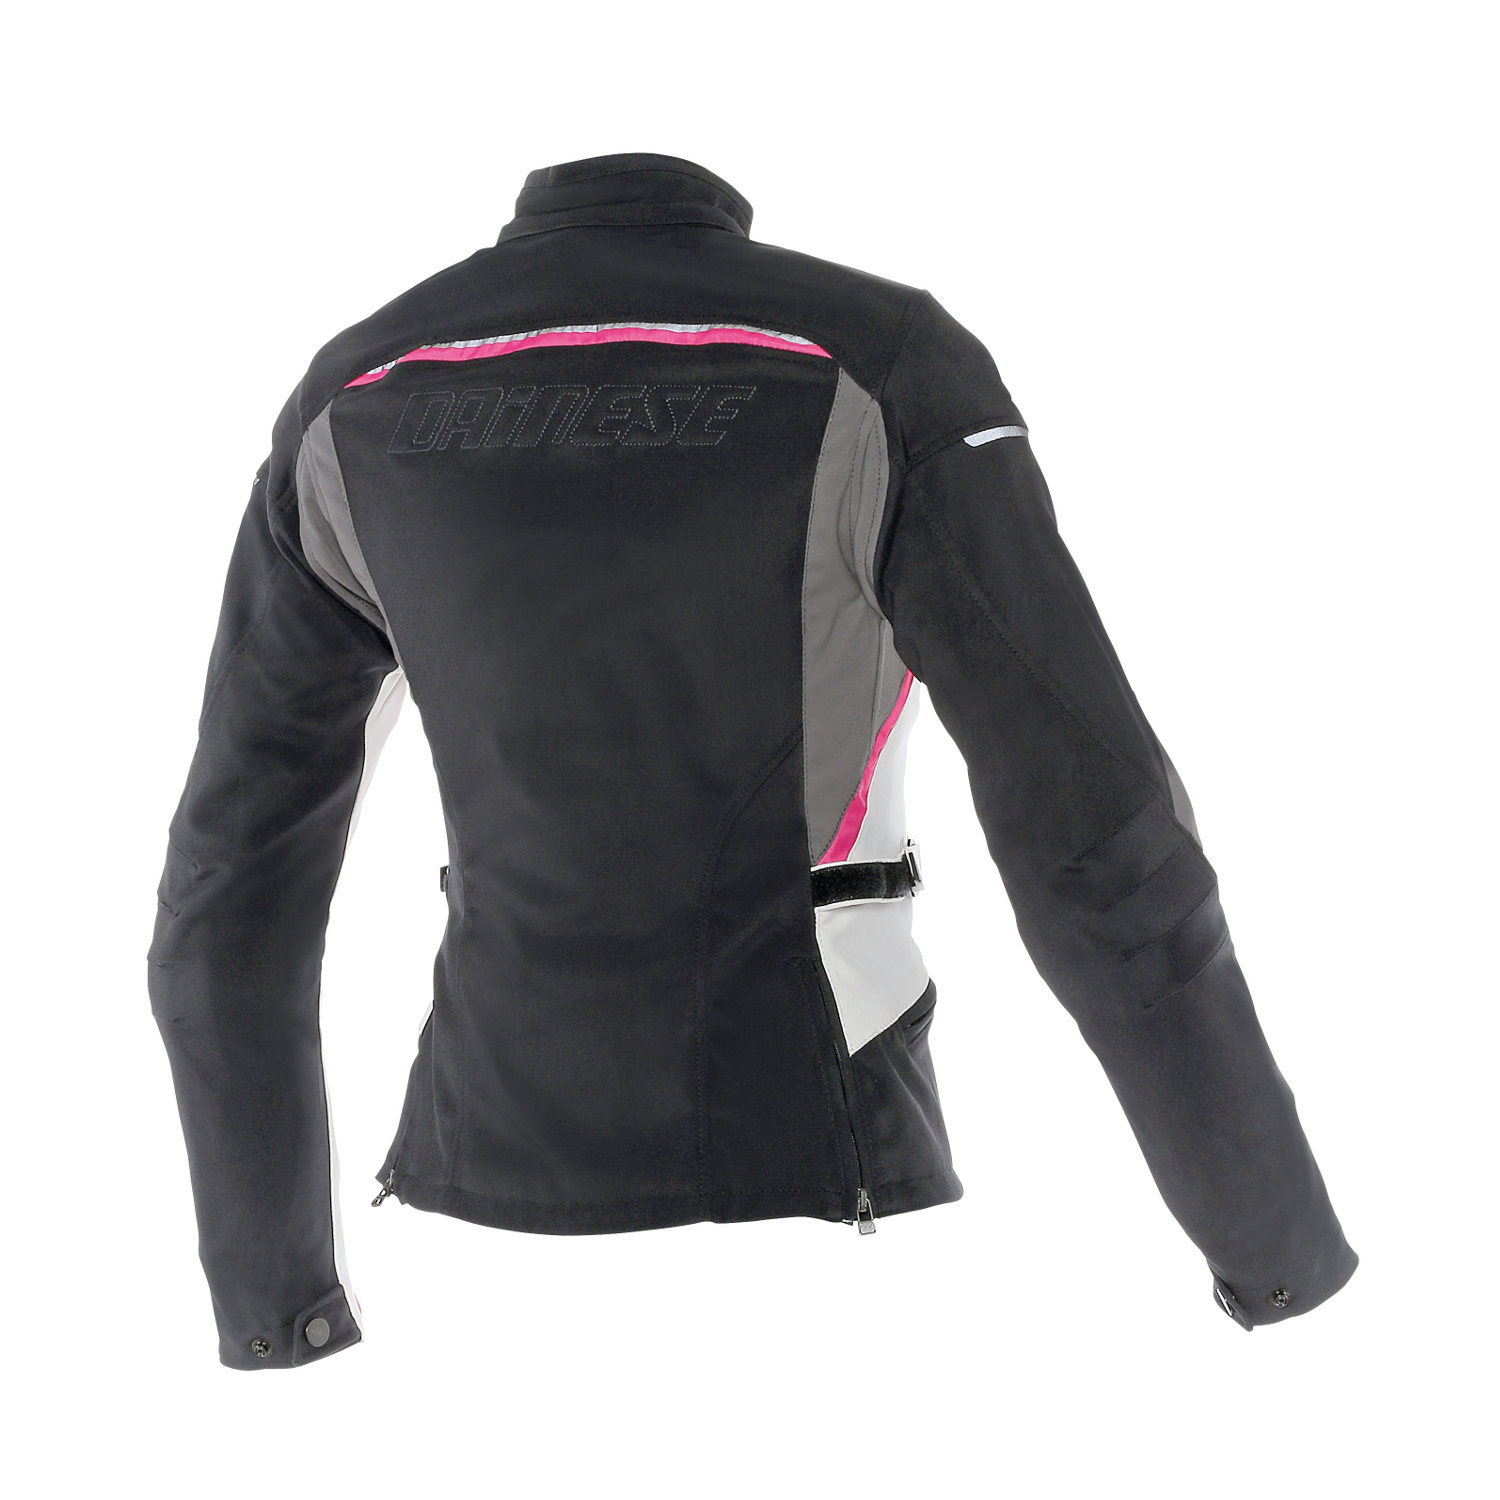 veste dainese g arya tex lady fushia blouson femme japauto accessoires. Black Bedroom Furniture Sets. Home Design Ideas